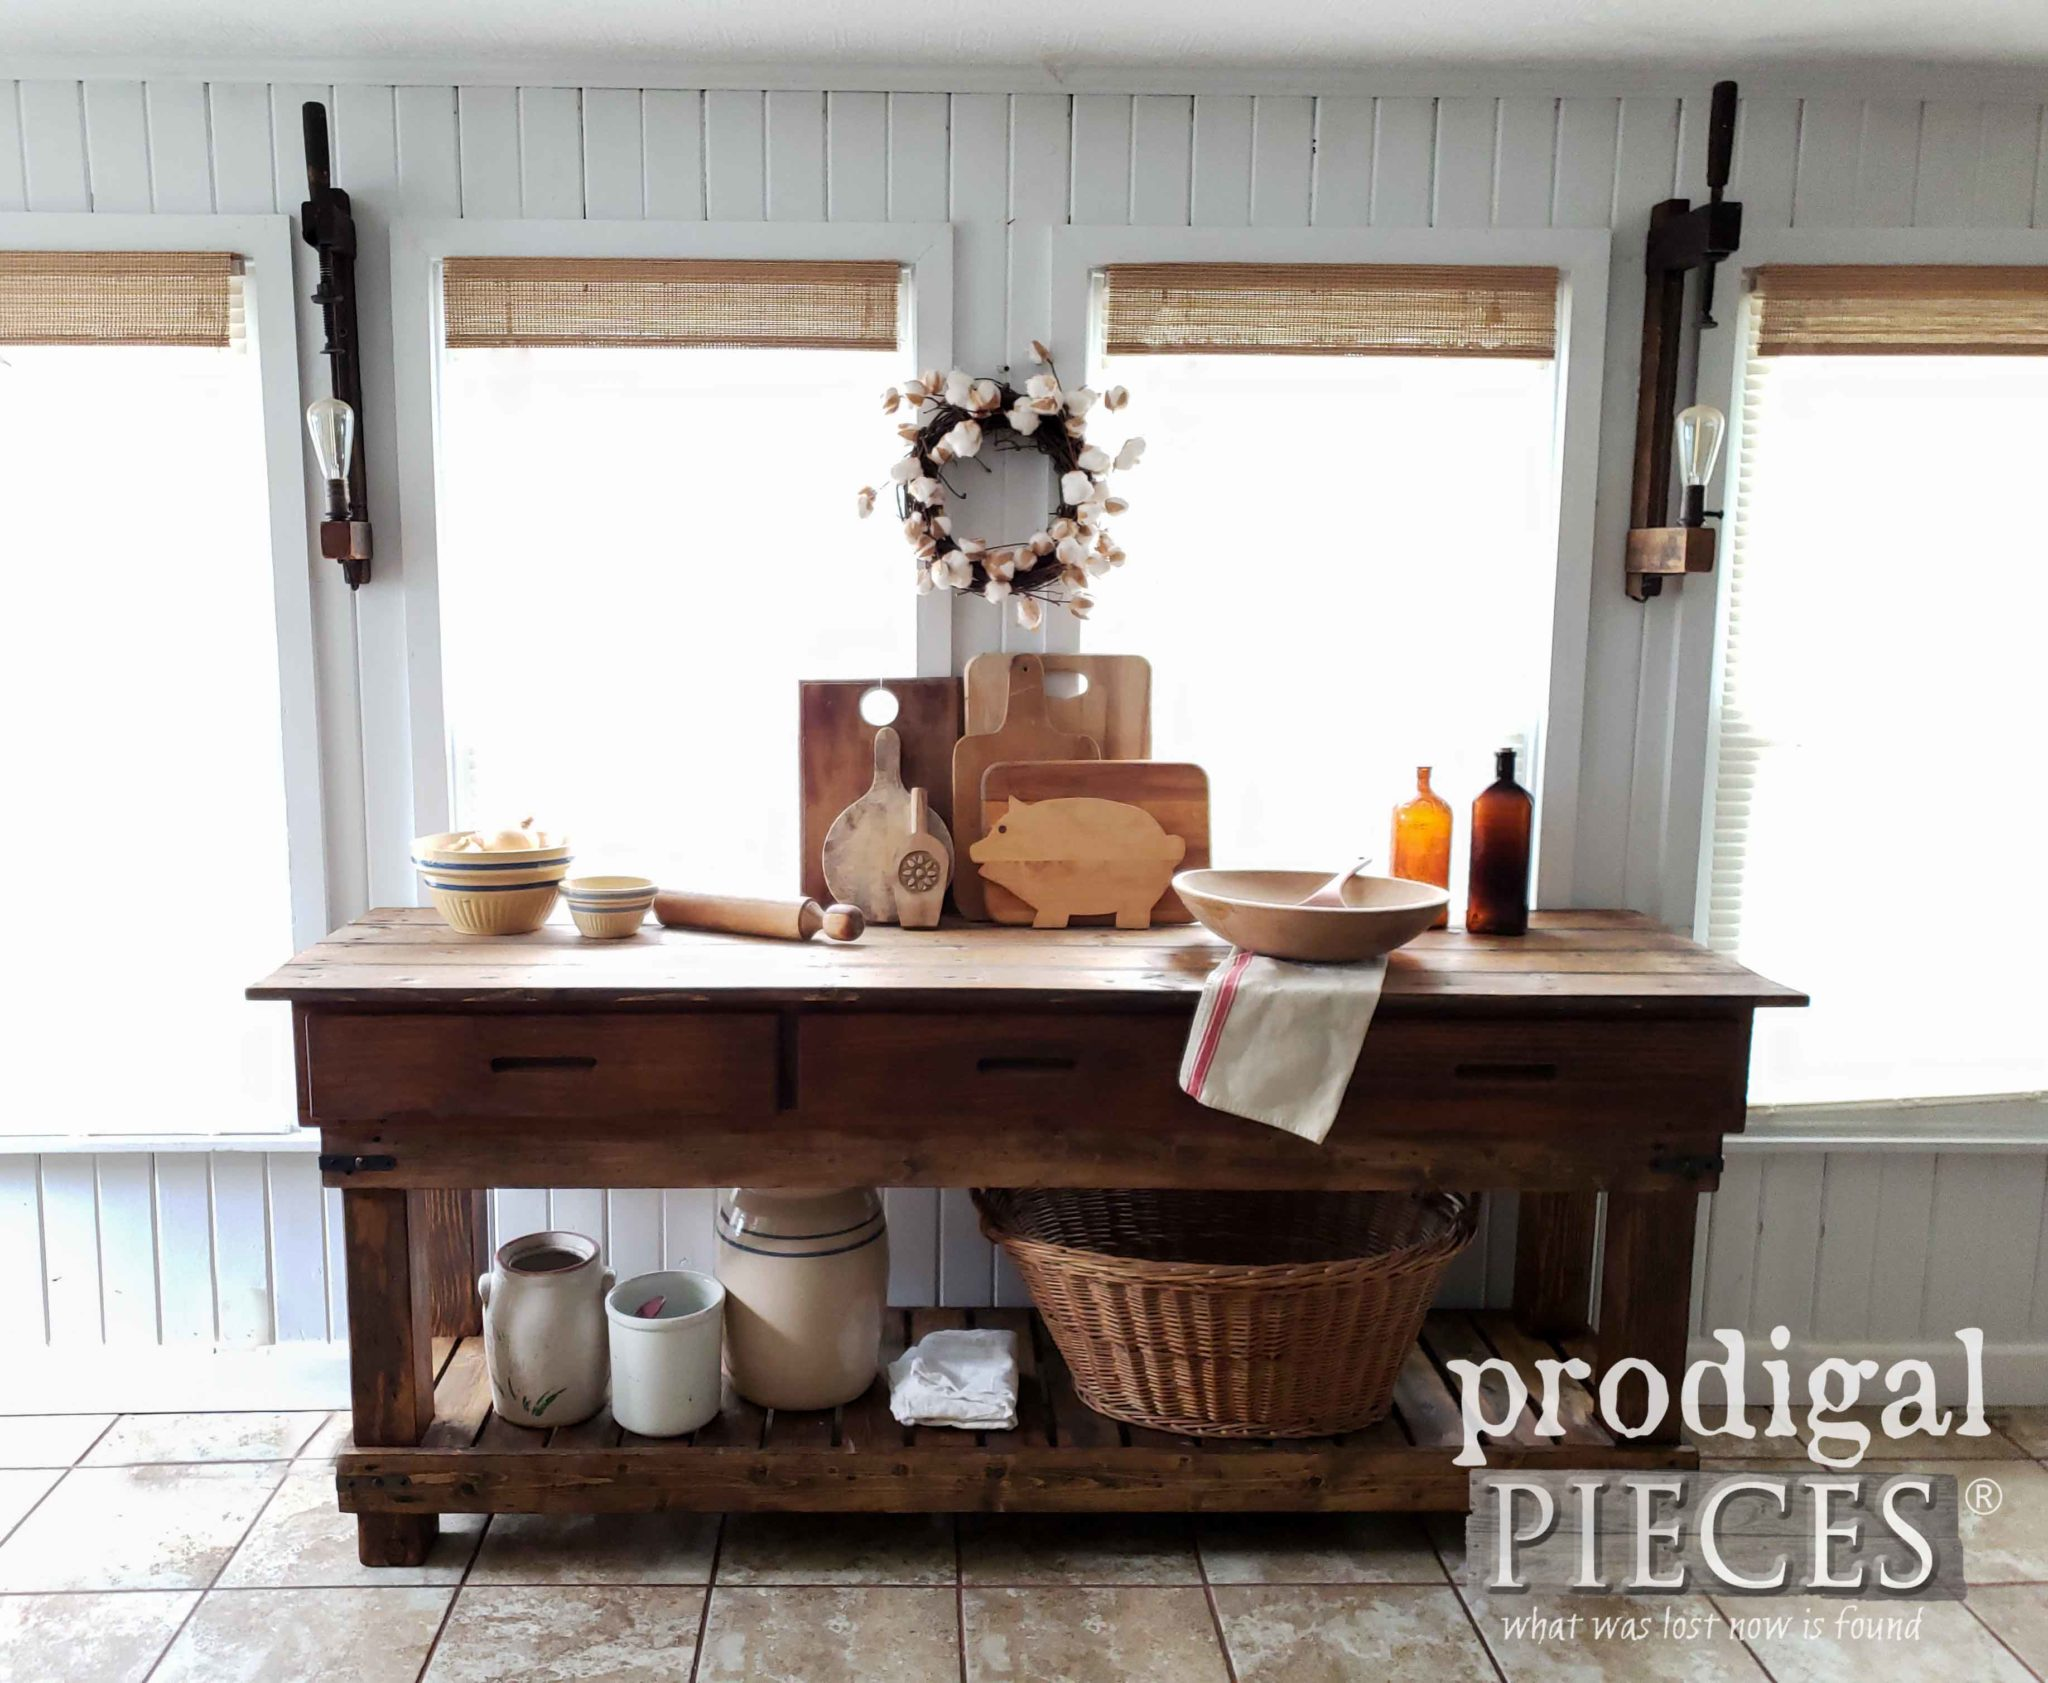 Rustic DIY Farmhouse Workbench Console for Kitchen and Home by Larissa of Prodigal Pieces | prodigalpieces.com